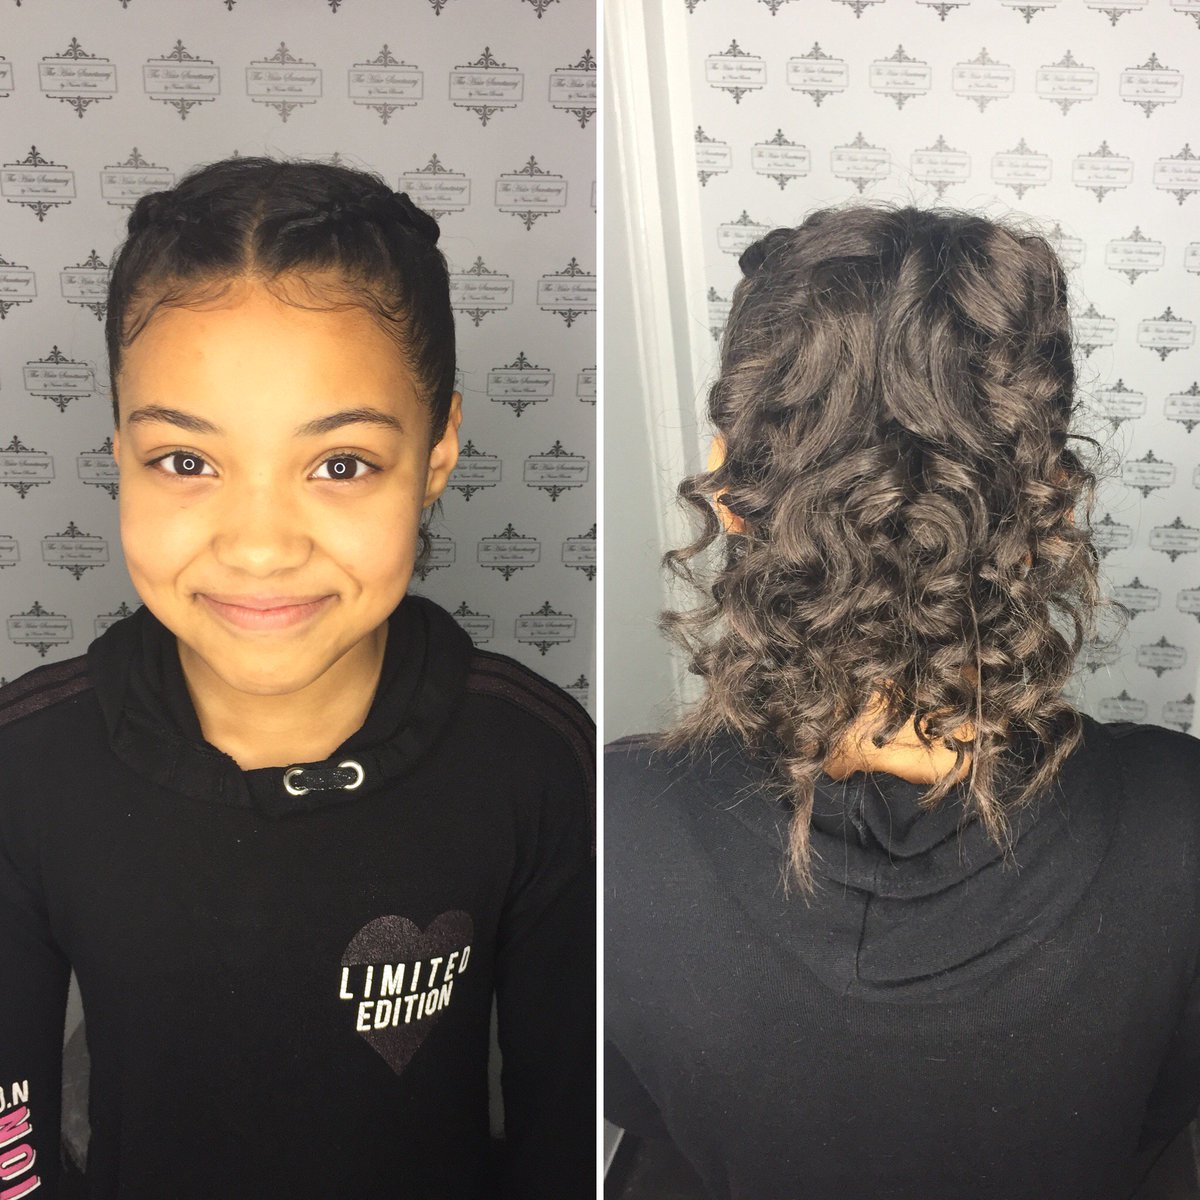 We've got the kids covered too 😉 You book children in for the following  *Trim  *Treatment *Braids *Wash & Style  *Texture release (age 10+)   We don't not provide chemical services for children  . . . . #hair #haircare #children #girls #boys #braids #trim #treatment #afrohair